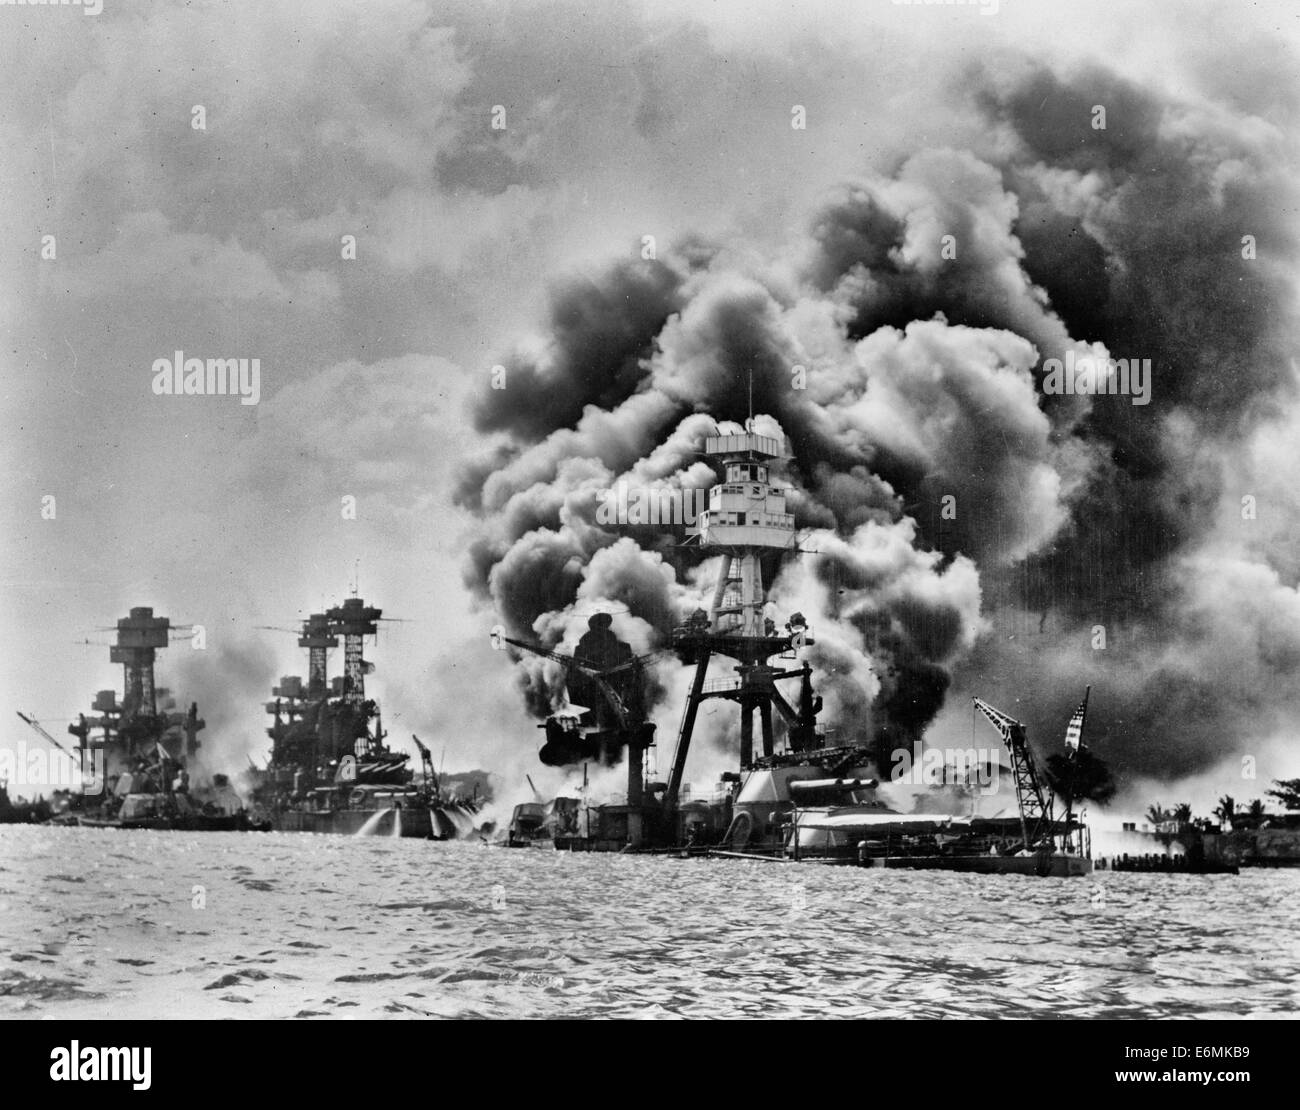 Stricken from the air. Three USA Battleships ablaze during the attack on Pearl Harbor - Stock Image